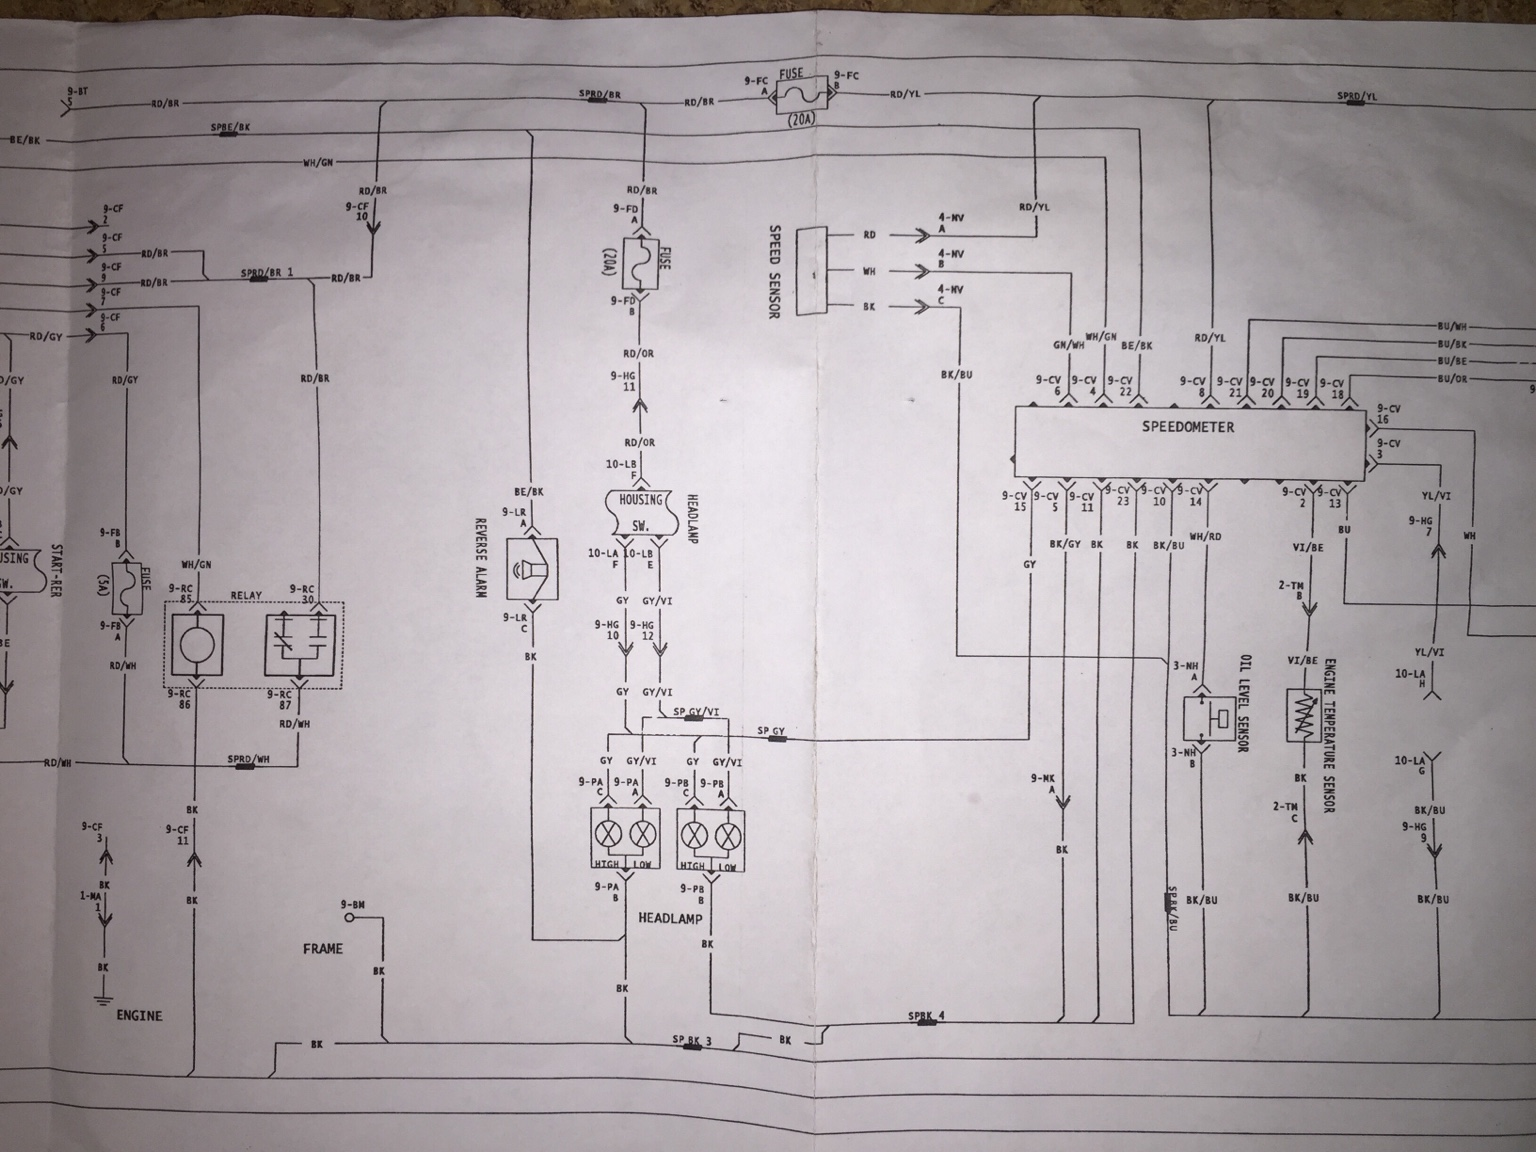 Ski Doo Rev Wiring Diagram - Page 2 - Wiring Diagram And Schematics